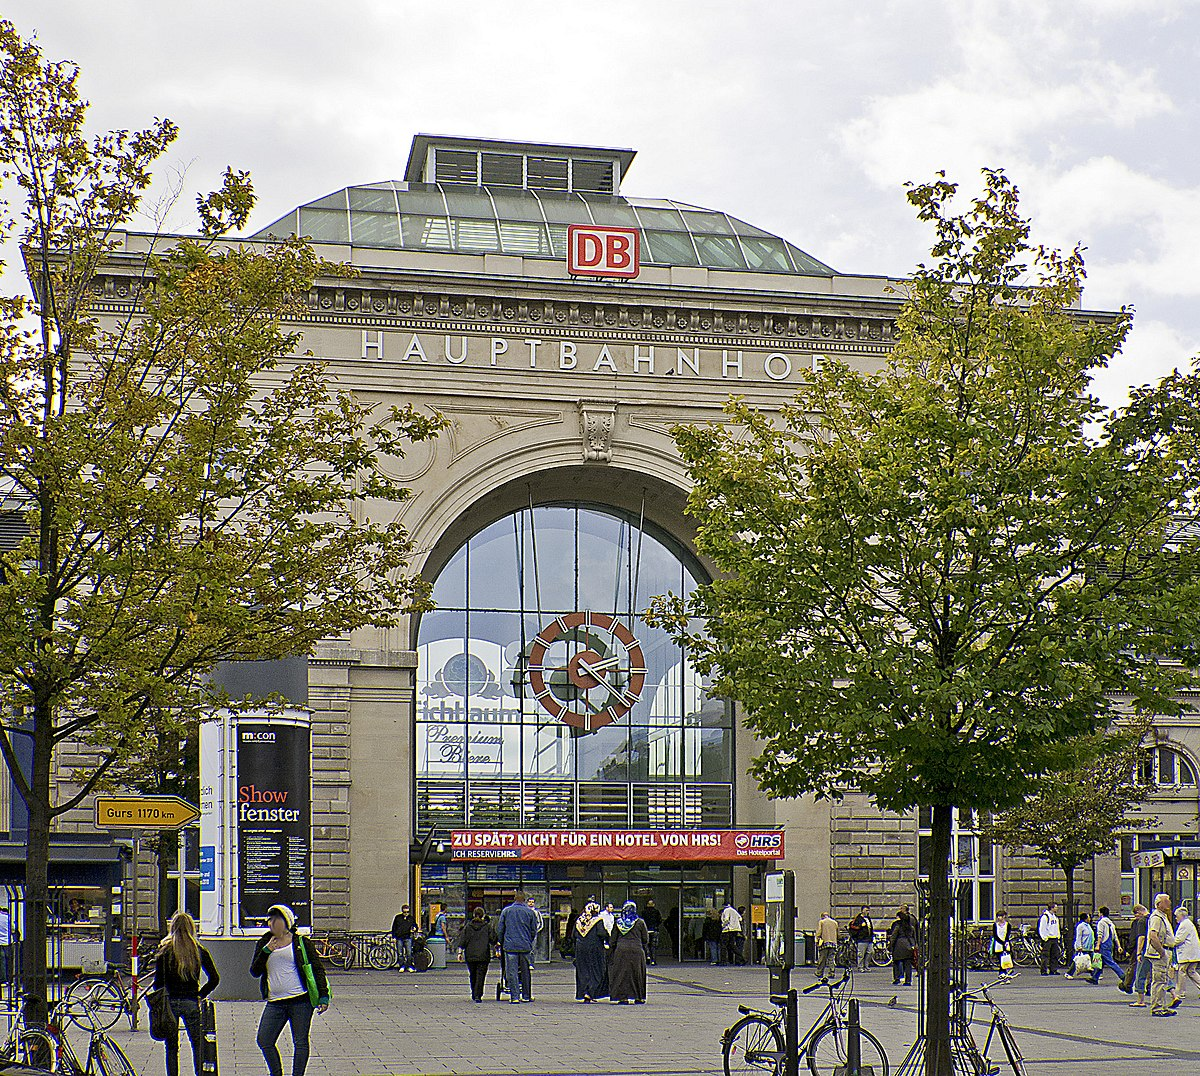 gare centrale de mannheim wikip dia. Black Bedroom Furniture Sets. Home Design Ideas